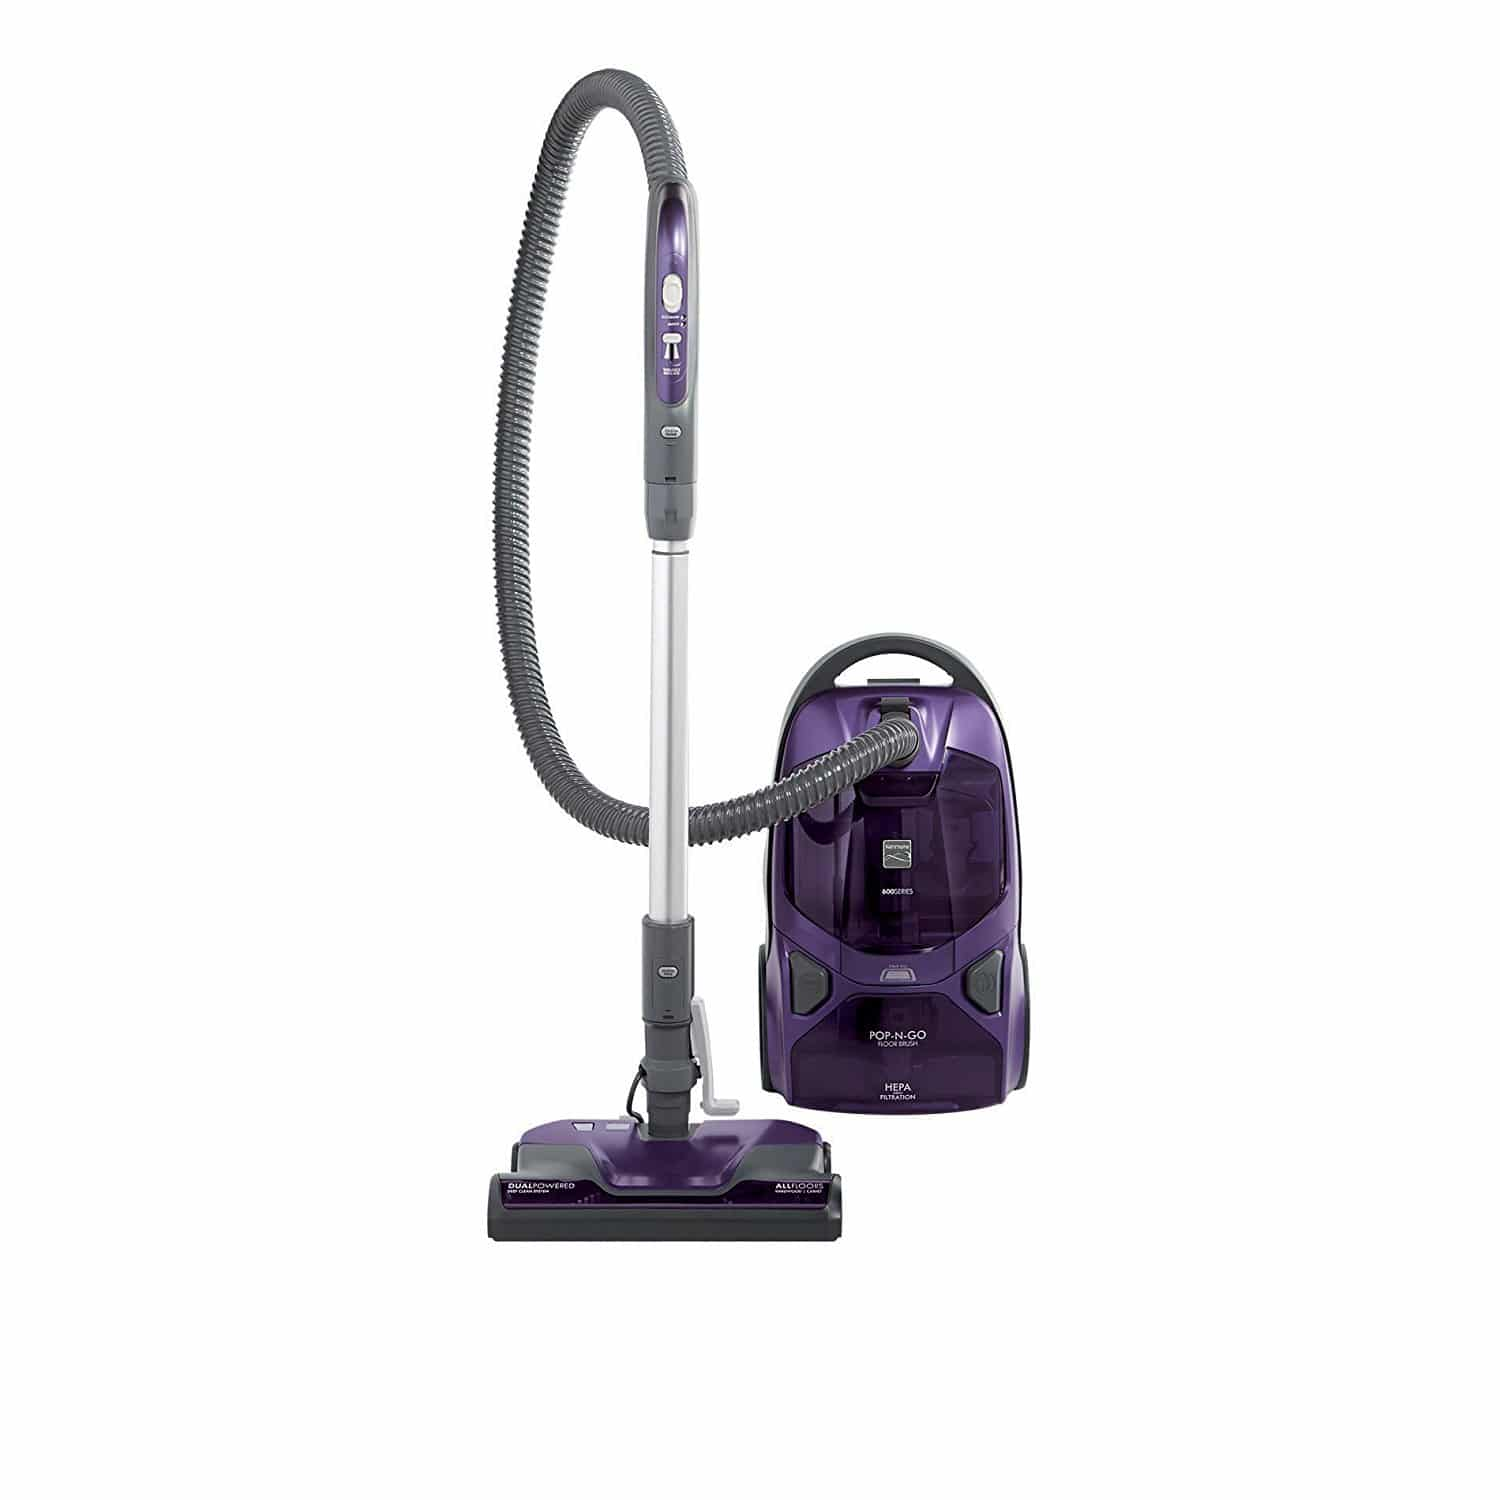 Best Vacuum Cleaner 2013: Top 5 Best Wet Dry Vacuum Cleaner For Home